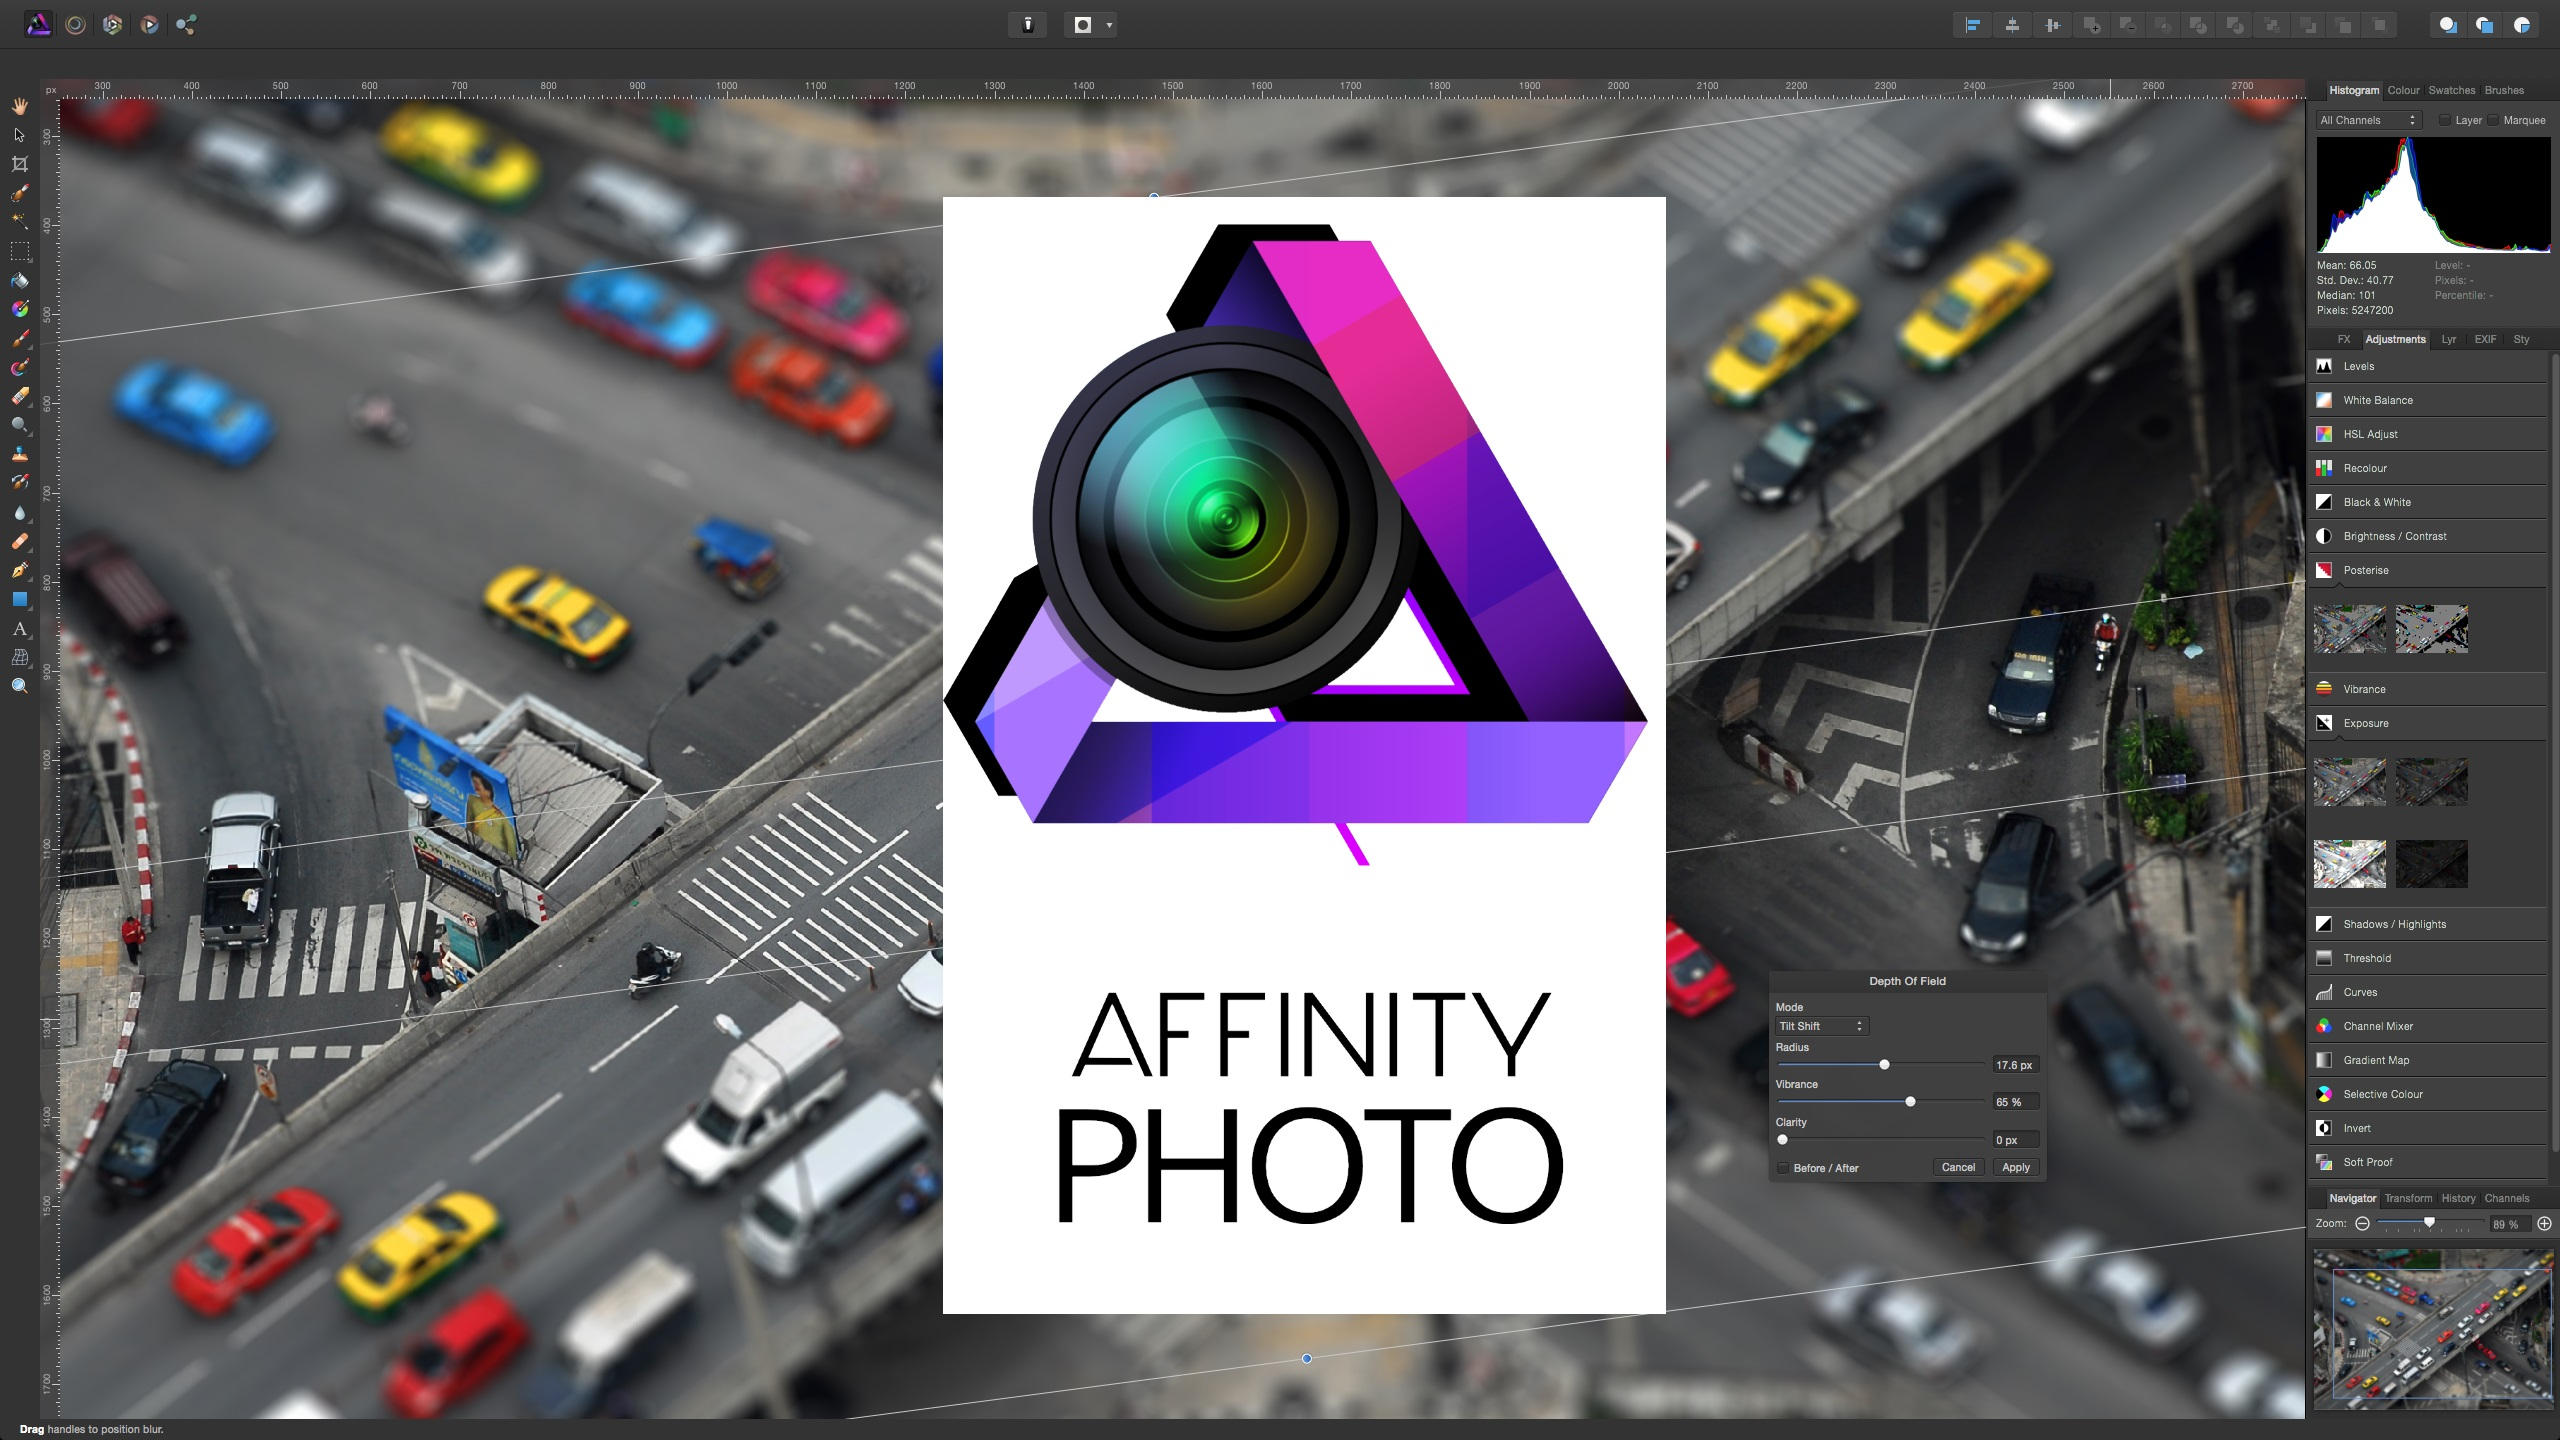 affinity photo download crack mac